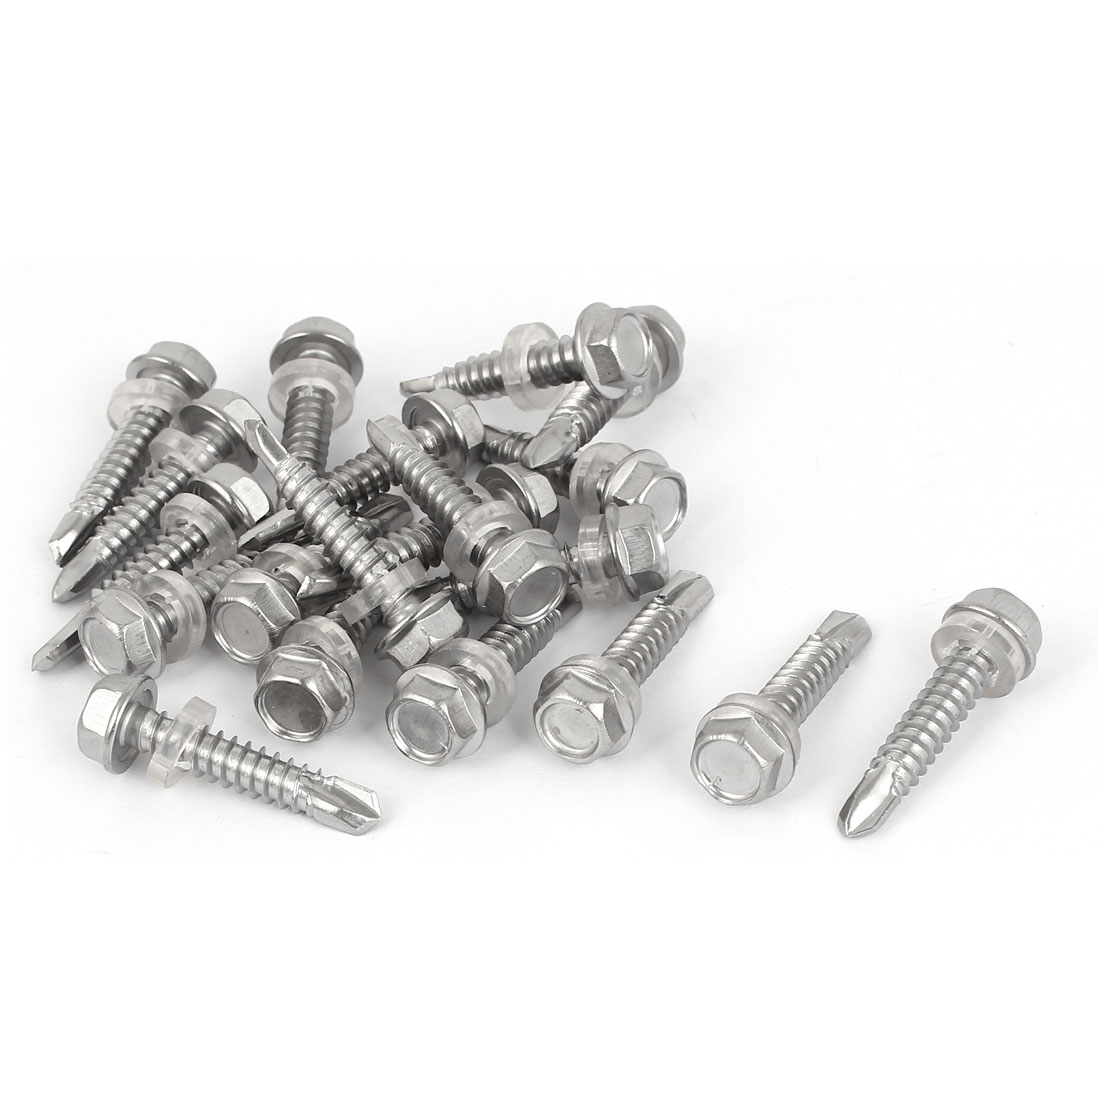 M6.3 x 32mm Thread Stainless Steel Hex Head Self Drilling Screw w Washer 20 Pcs